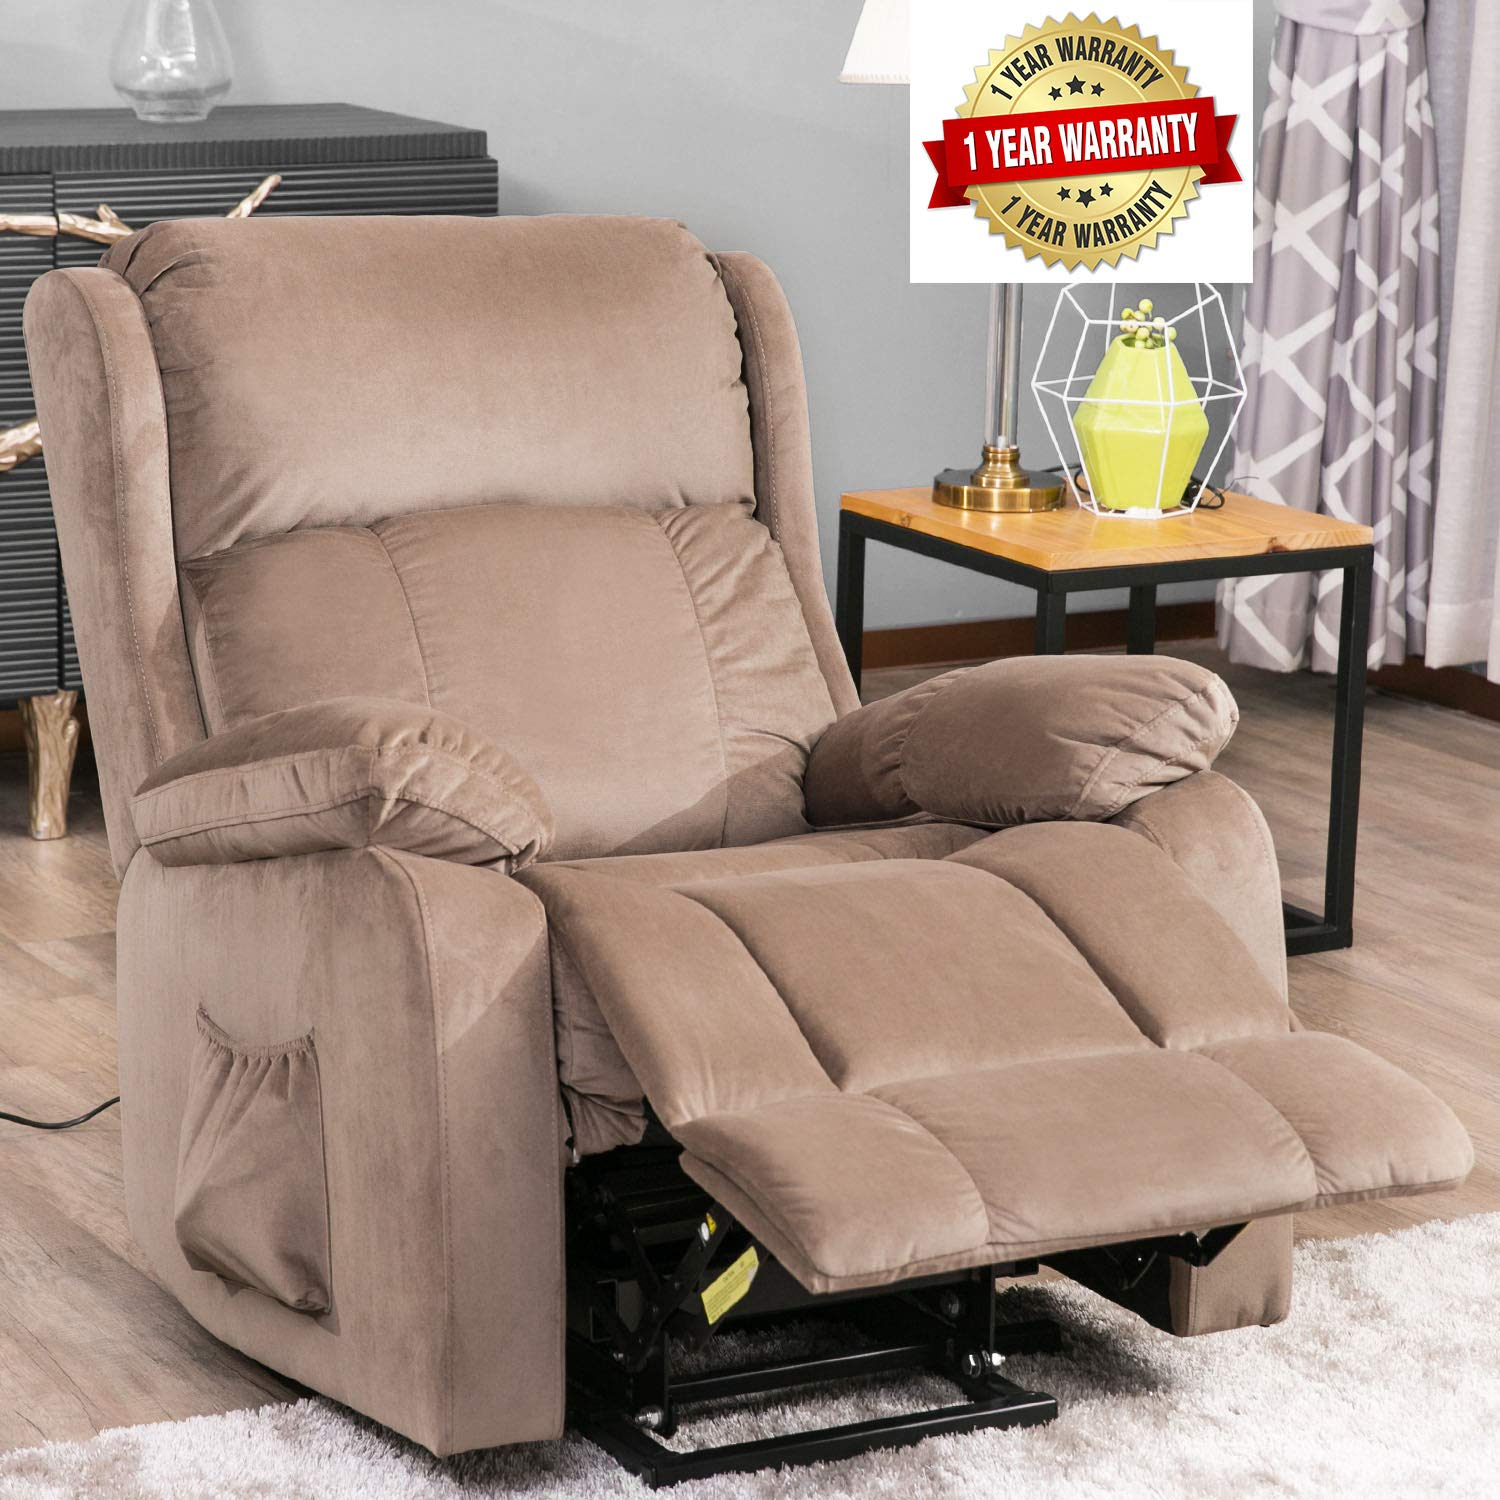 Power Lift Chair for Elderly Reclining Chair Sofa Electric Recliner Chairs with Remote Control Soft Fabric Lounge by Merax